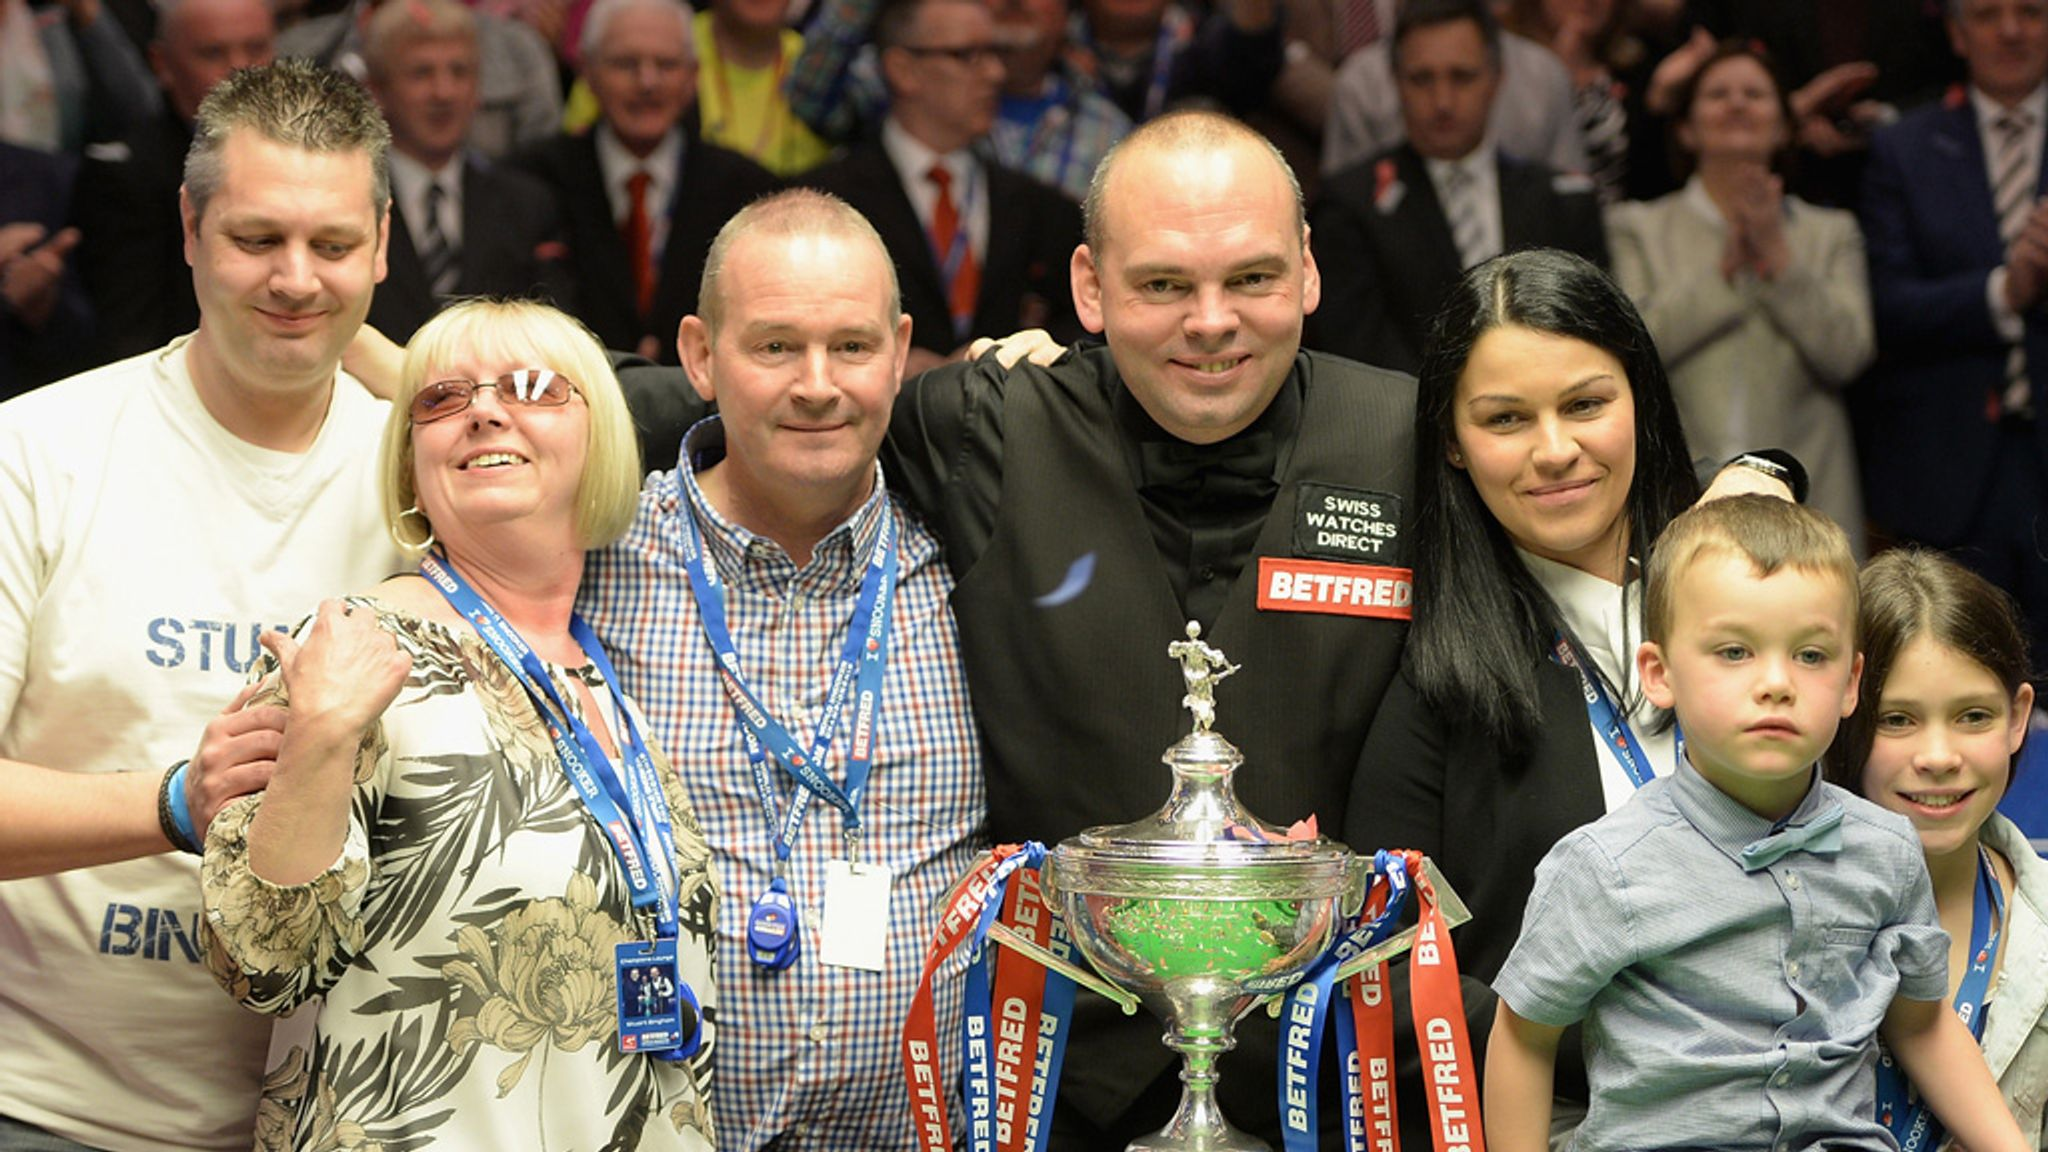 Stuart Bingham concerned modern fans have lost touch with snooker ...